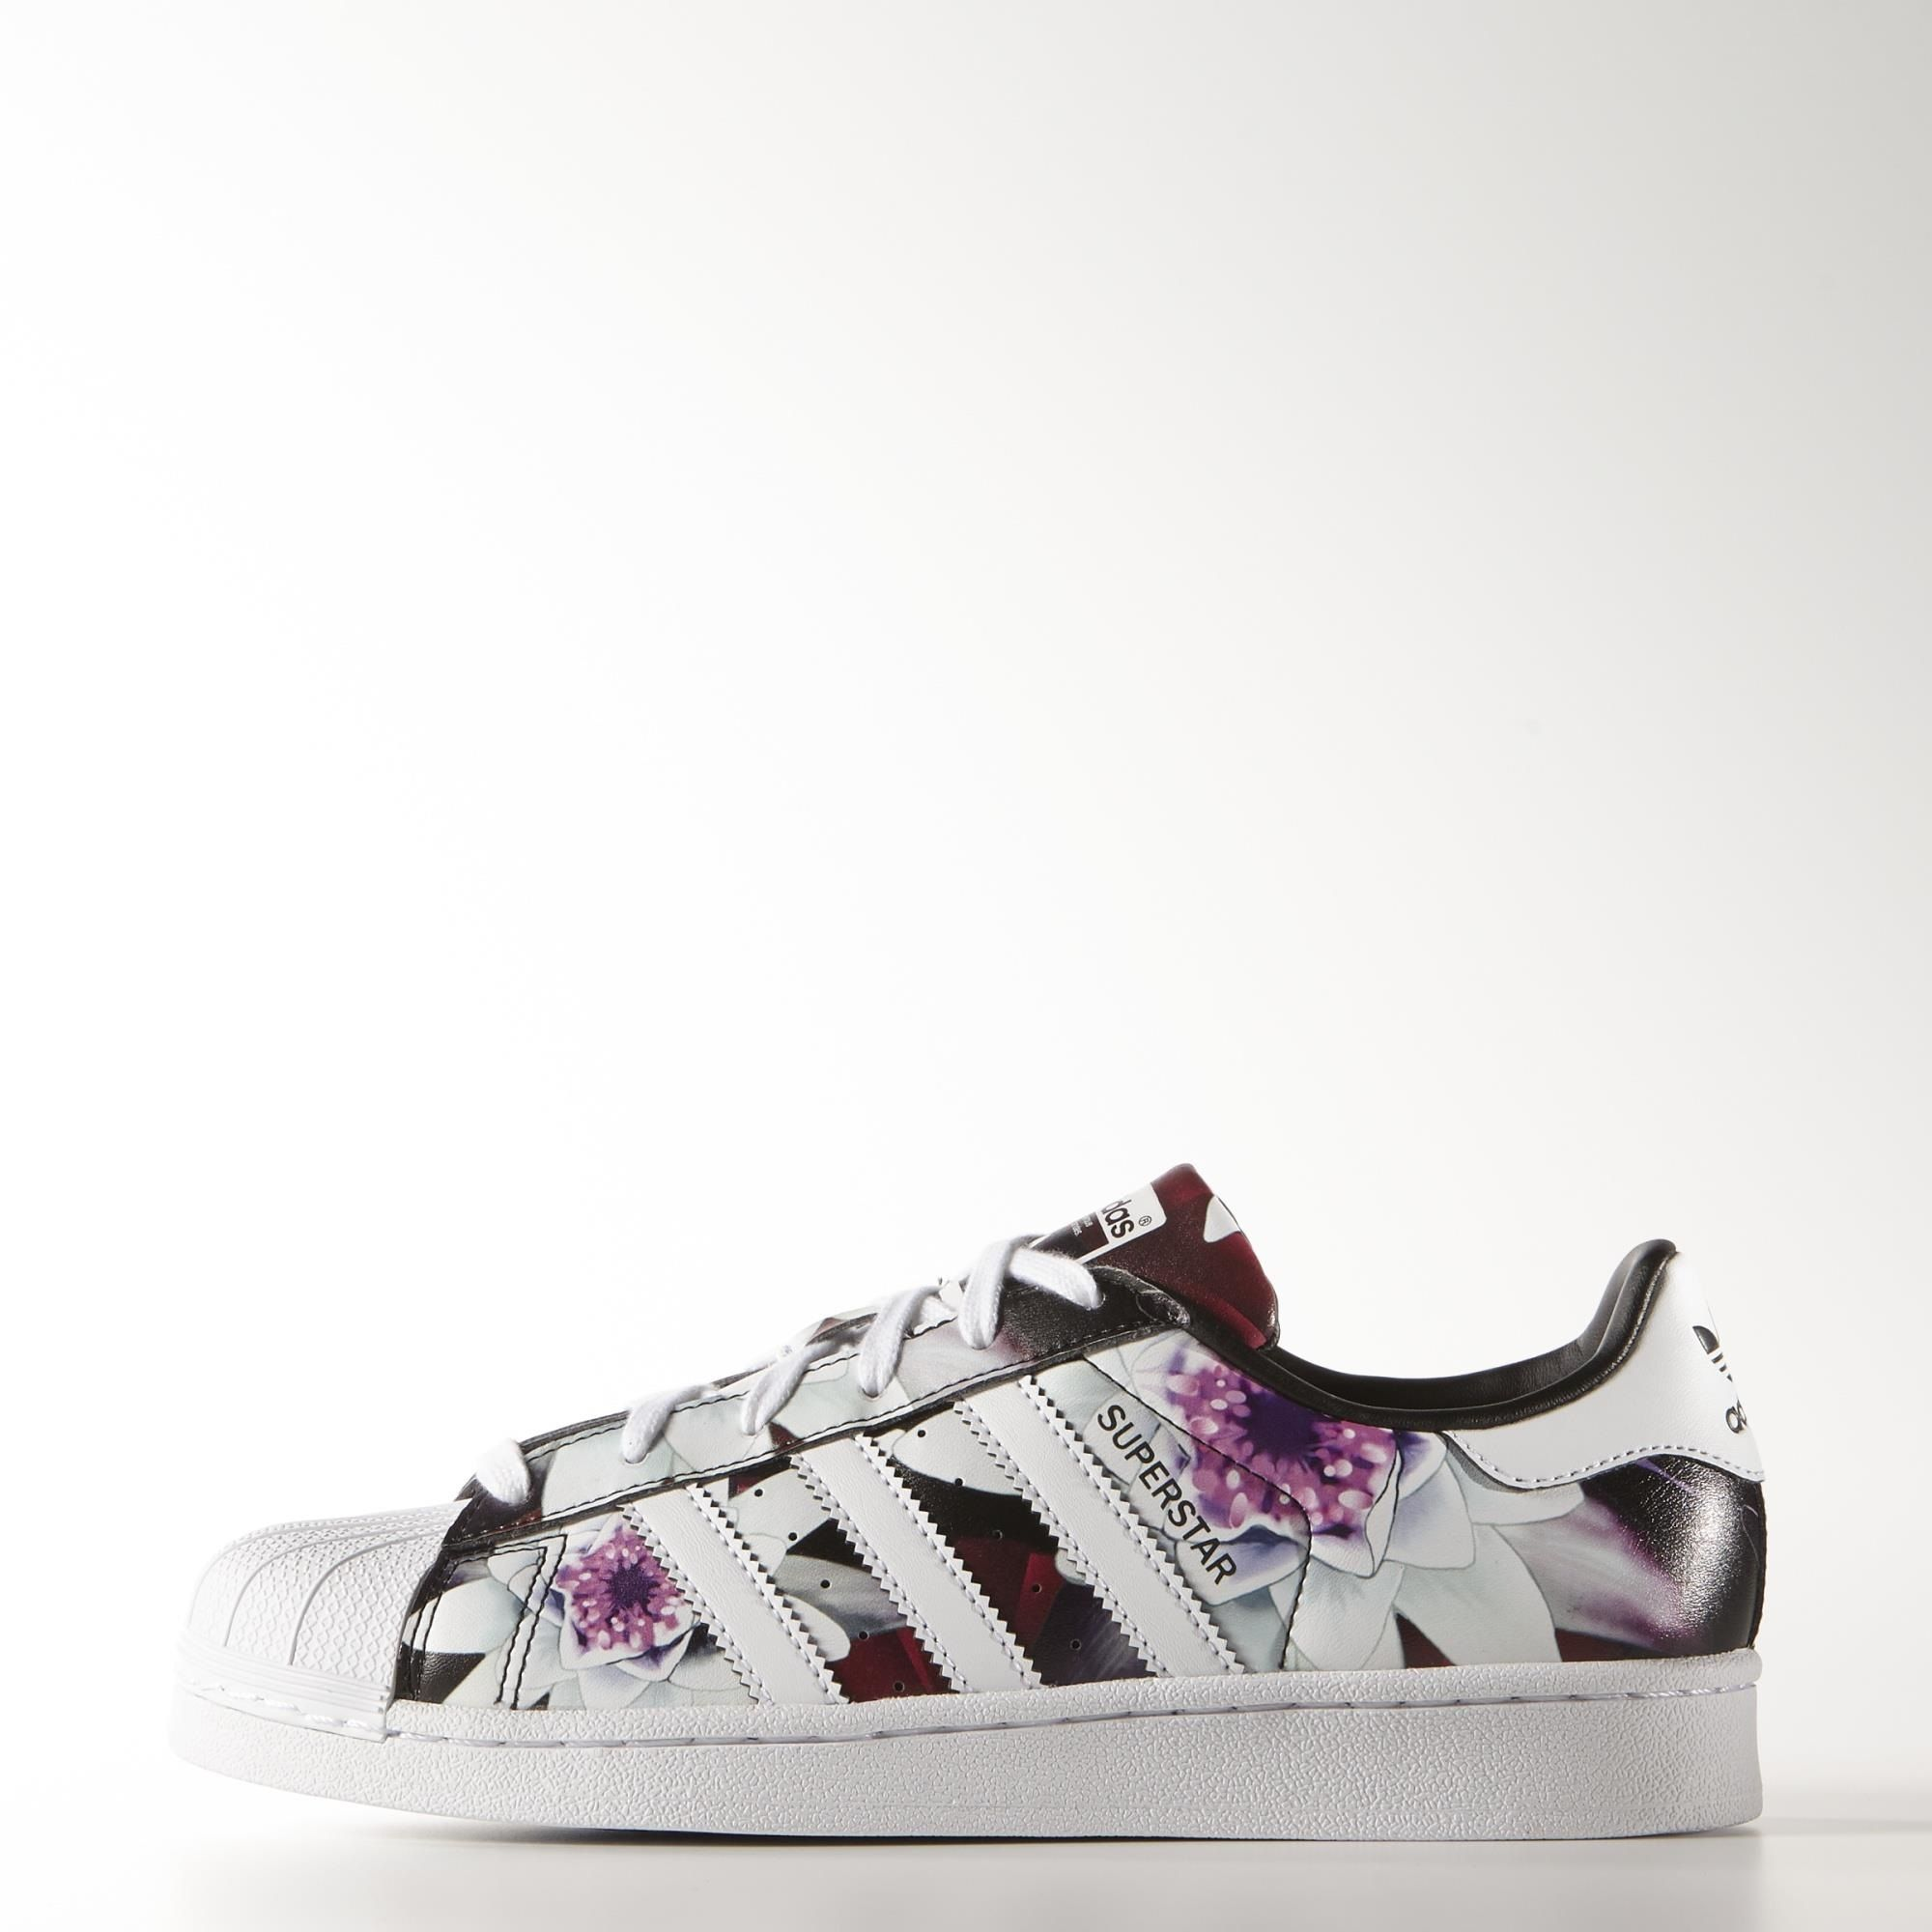 Womens Adidas Originals Real Superstar Lotus Print Pink sales Print/White Running Most Expensive Shoes B35859